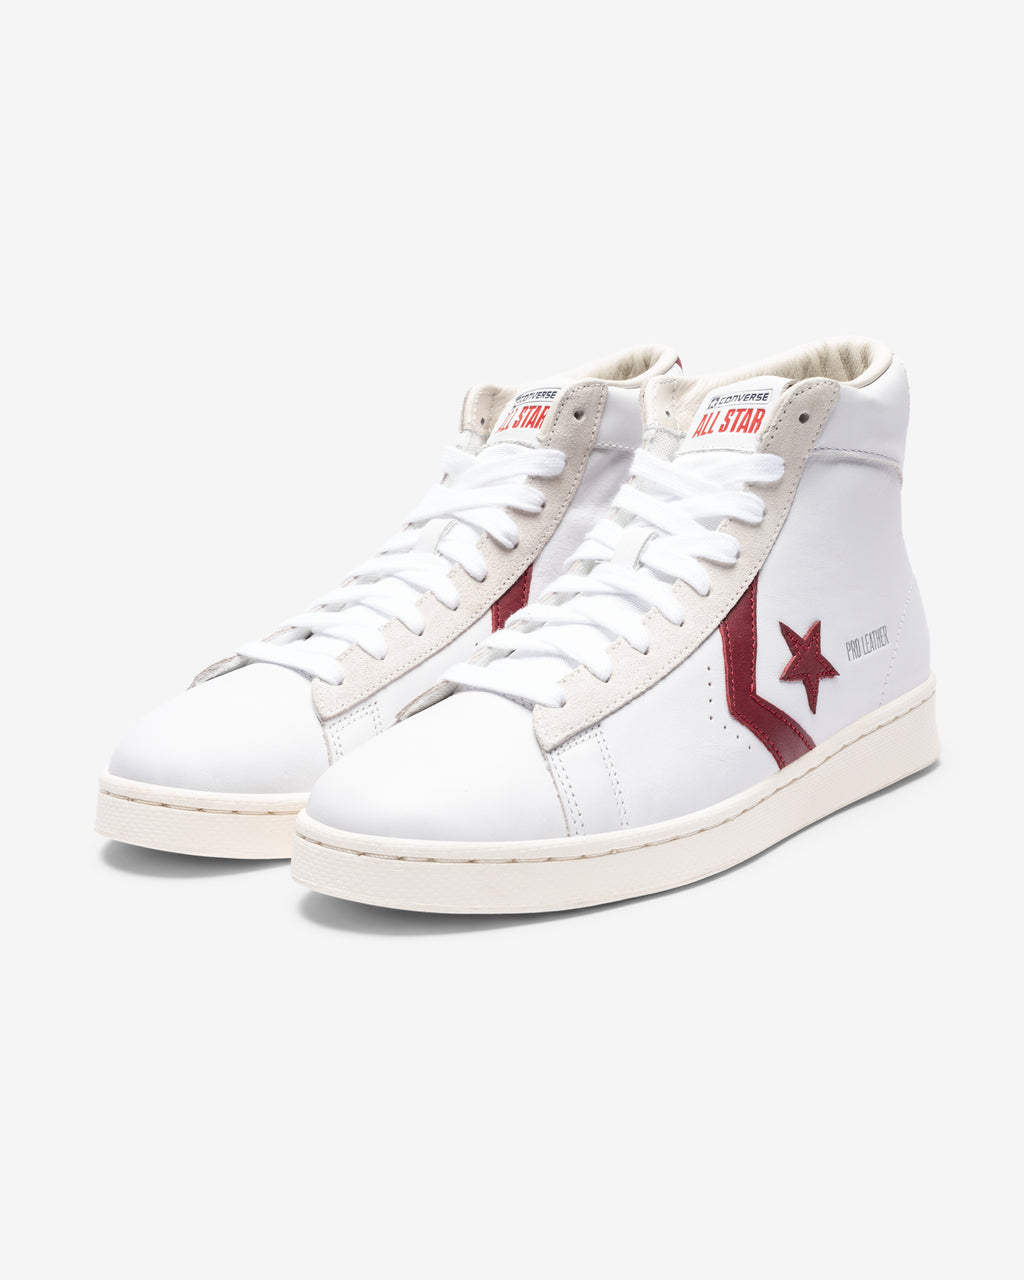 PRO LEATHER HI - WHITE/ TEAMRED/ EGRET